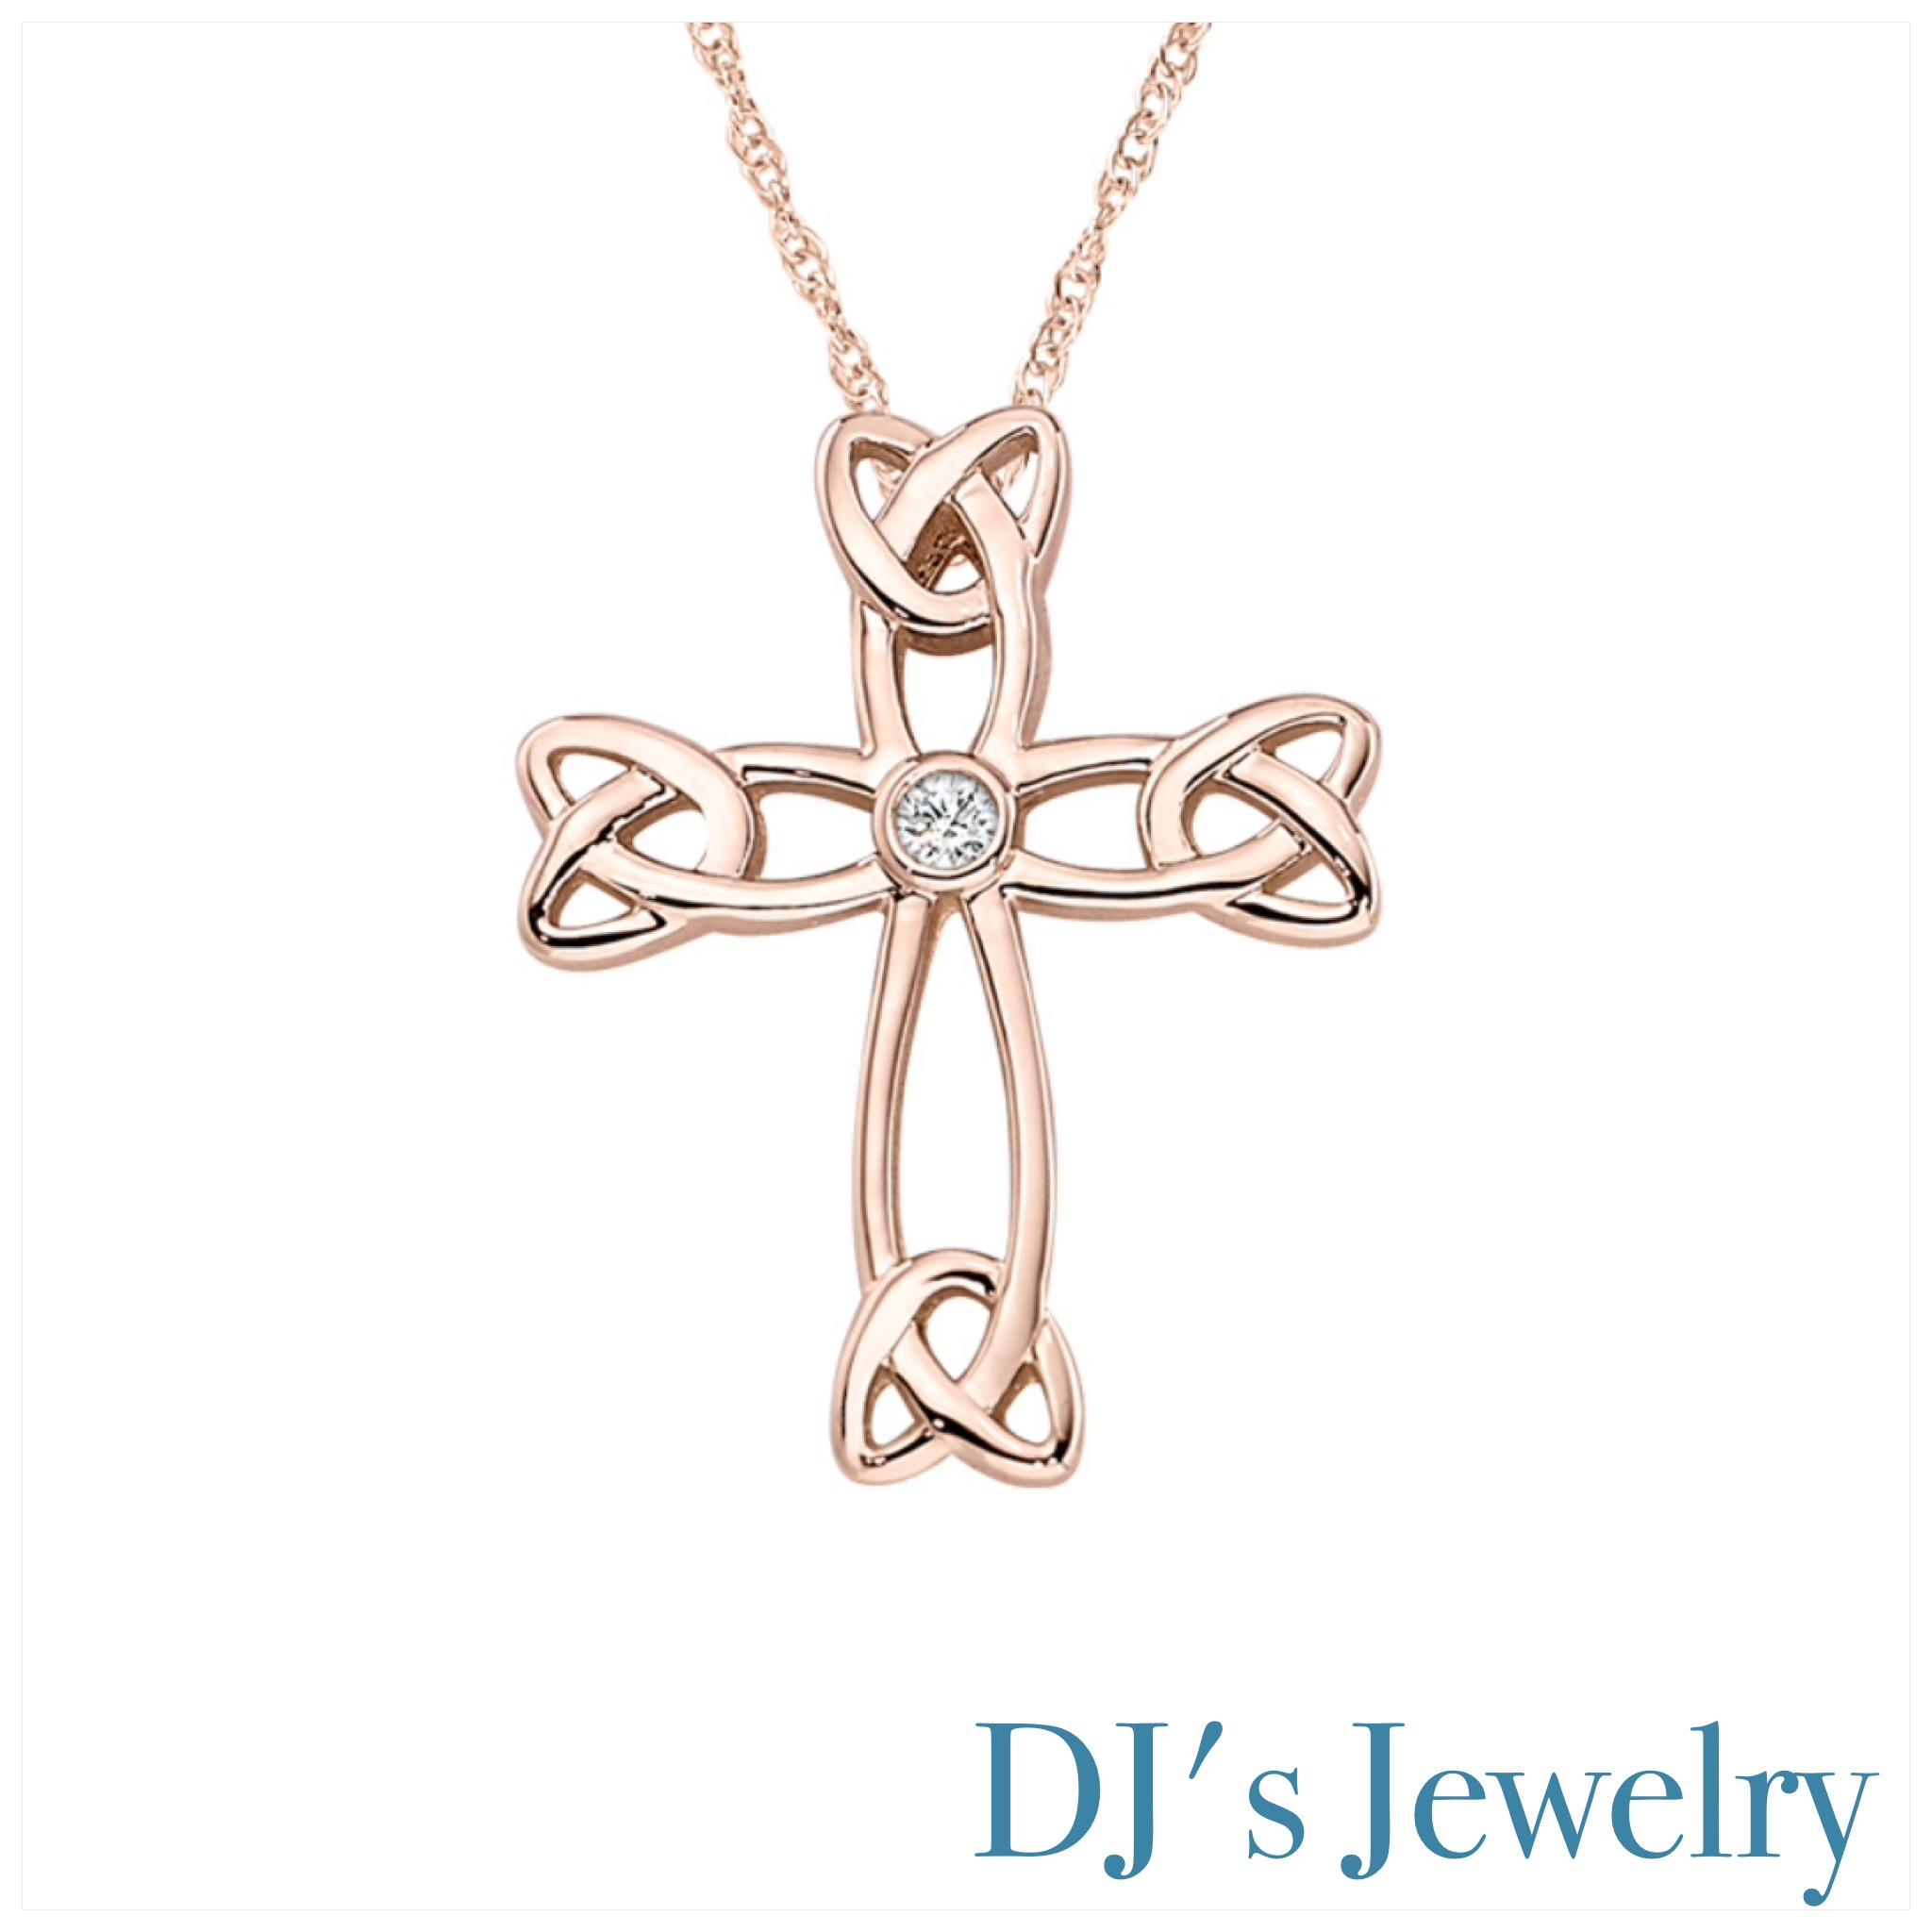 David Connolly - 2018-01-17-16-13-43_IMG_2552.JPG - brand name designer jewelry in Woodland, California